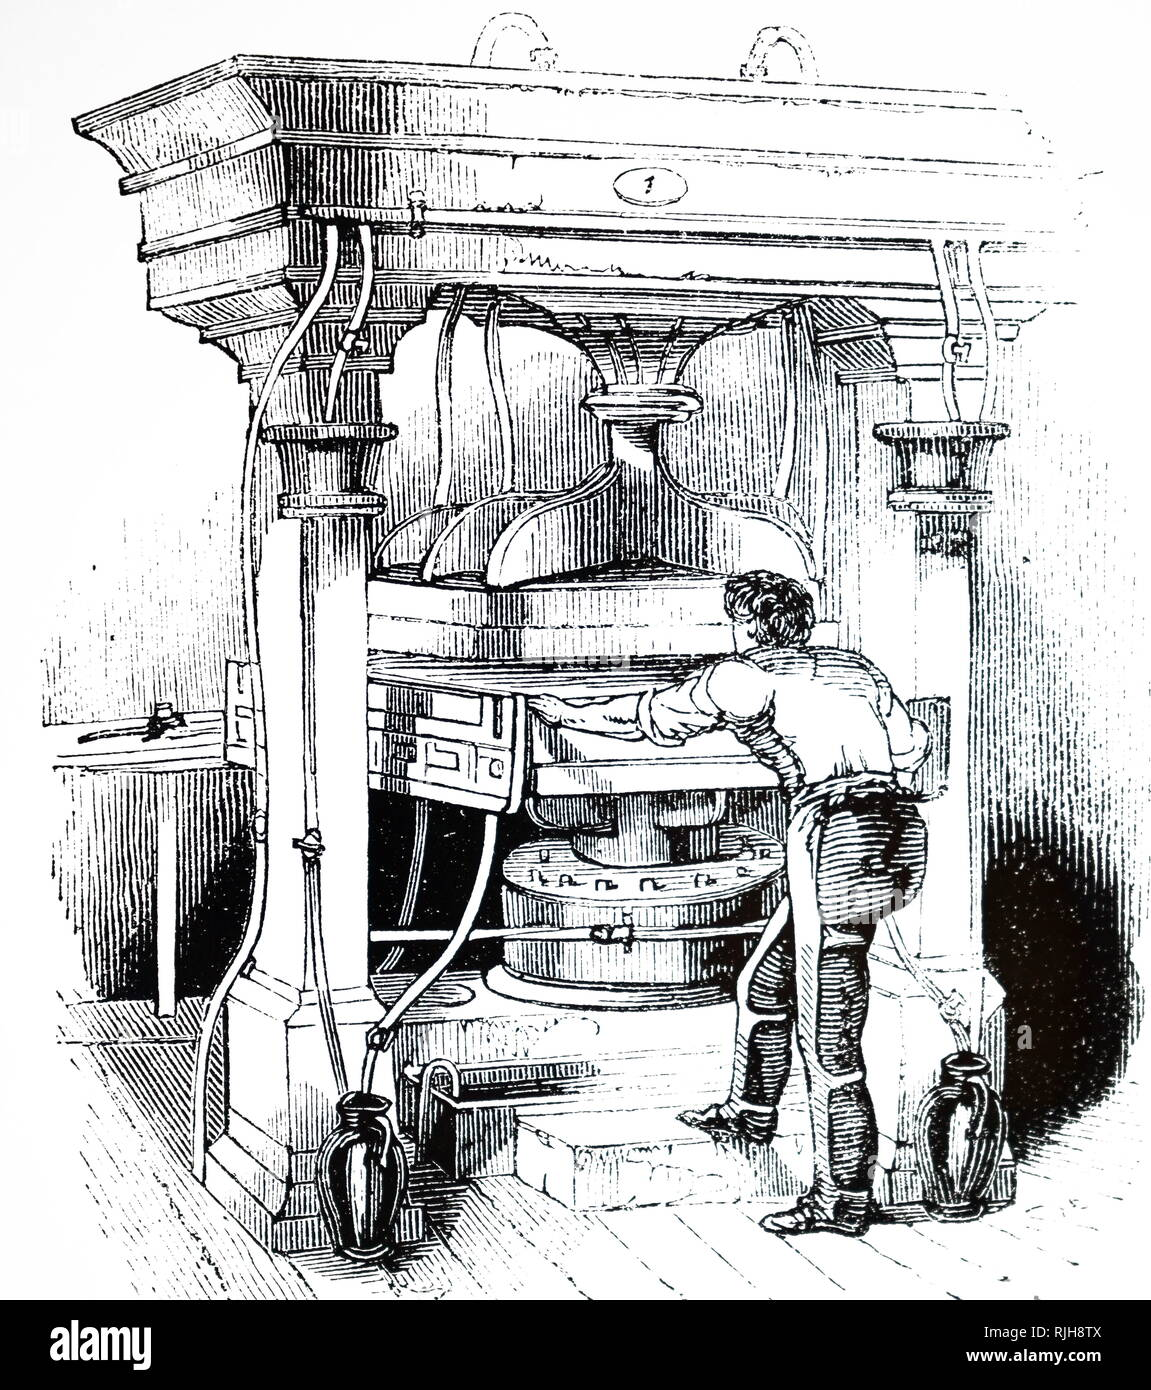 An engraving depicting a hydraulic press for printing bandanas (handkerchief squares). Dated 19th century - Stock Image